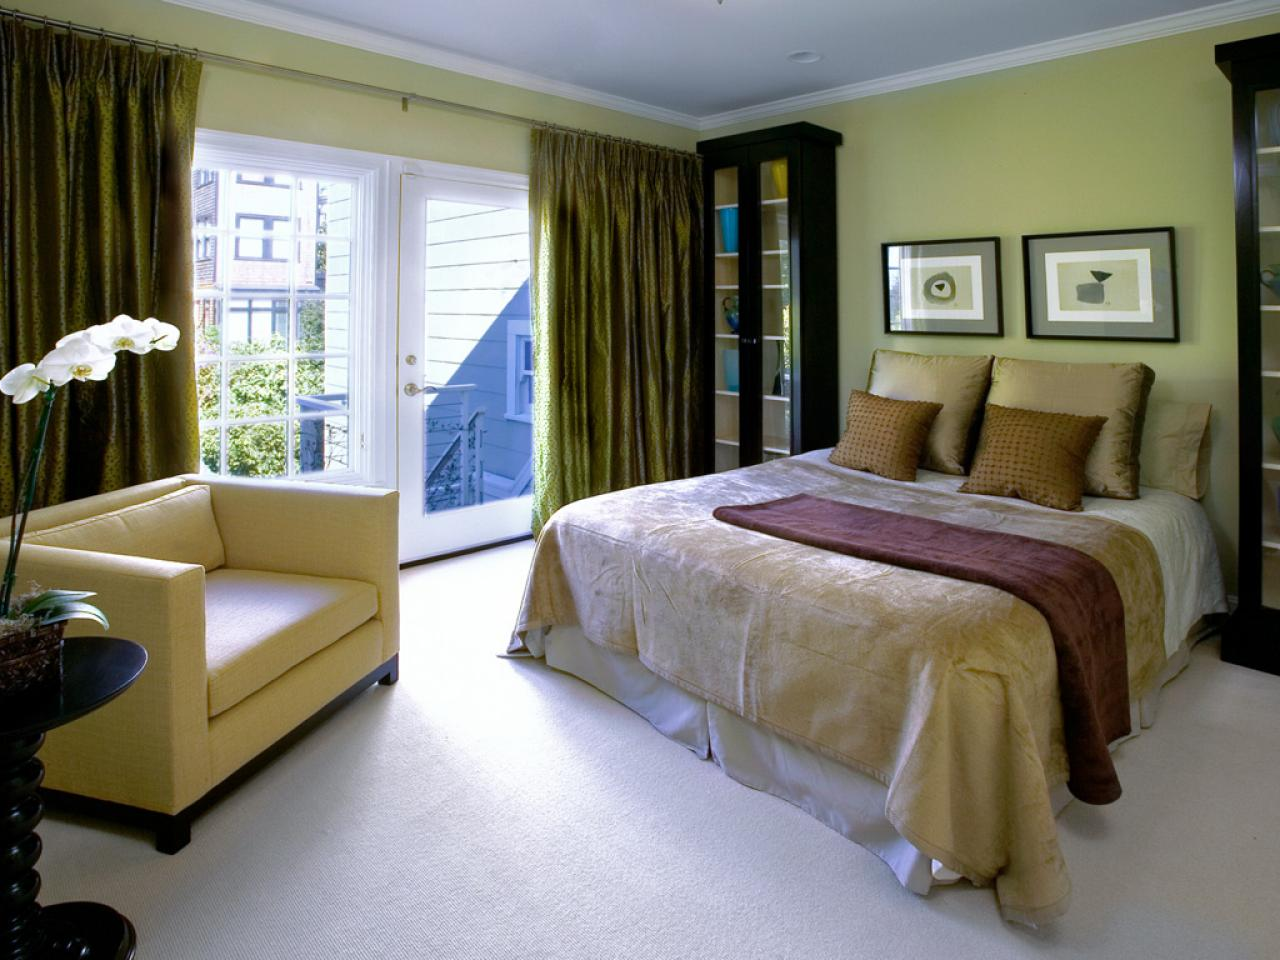 New Neutral Colors in a Nursery bedroom wall colour ideas